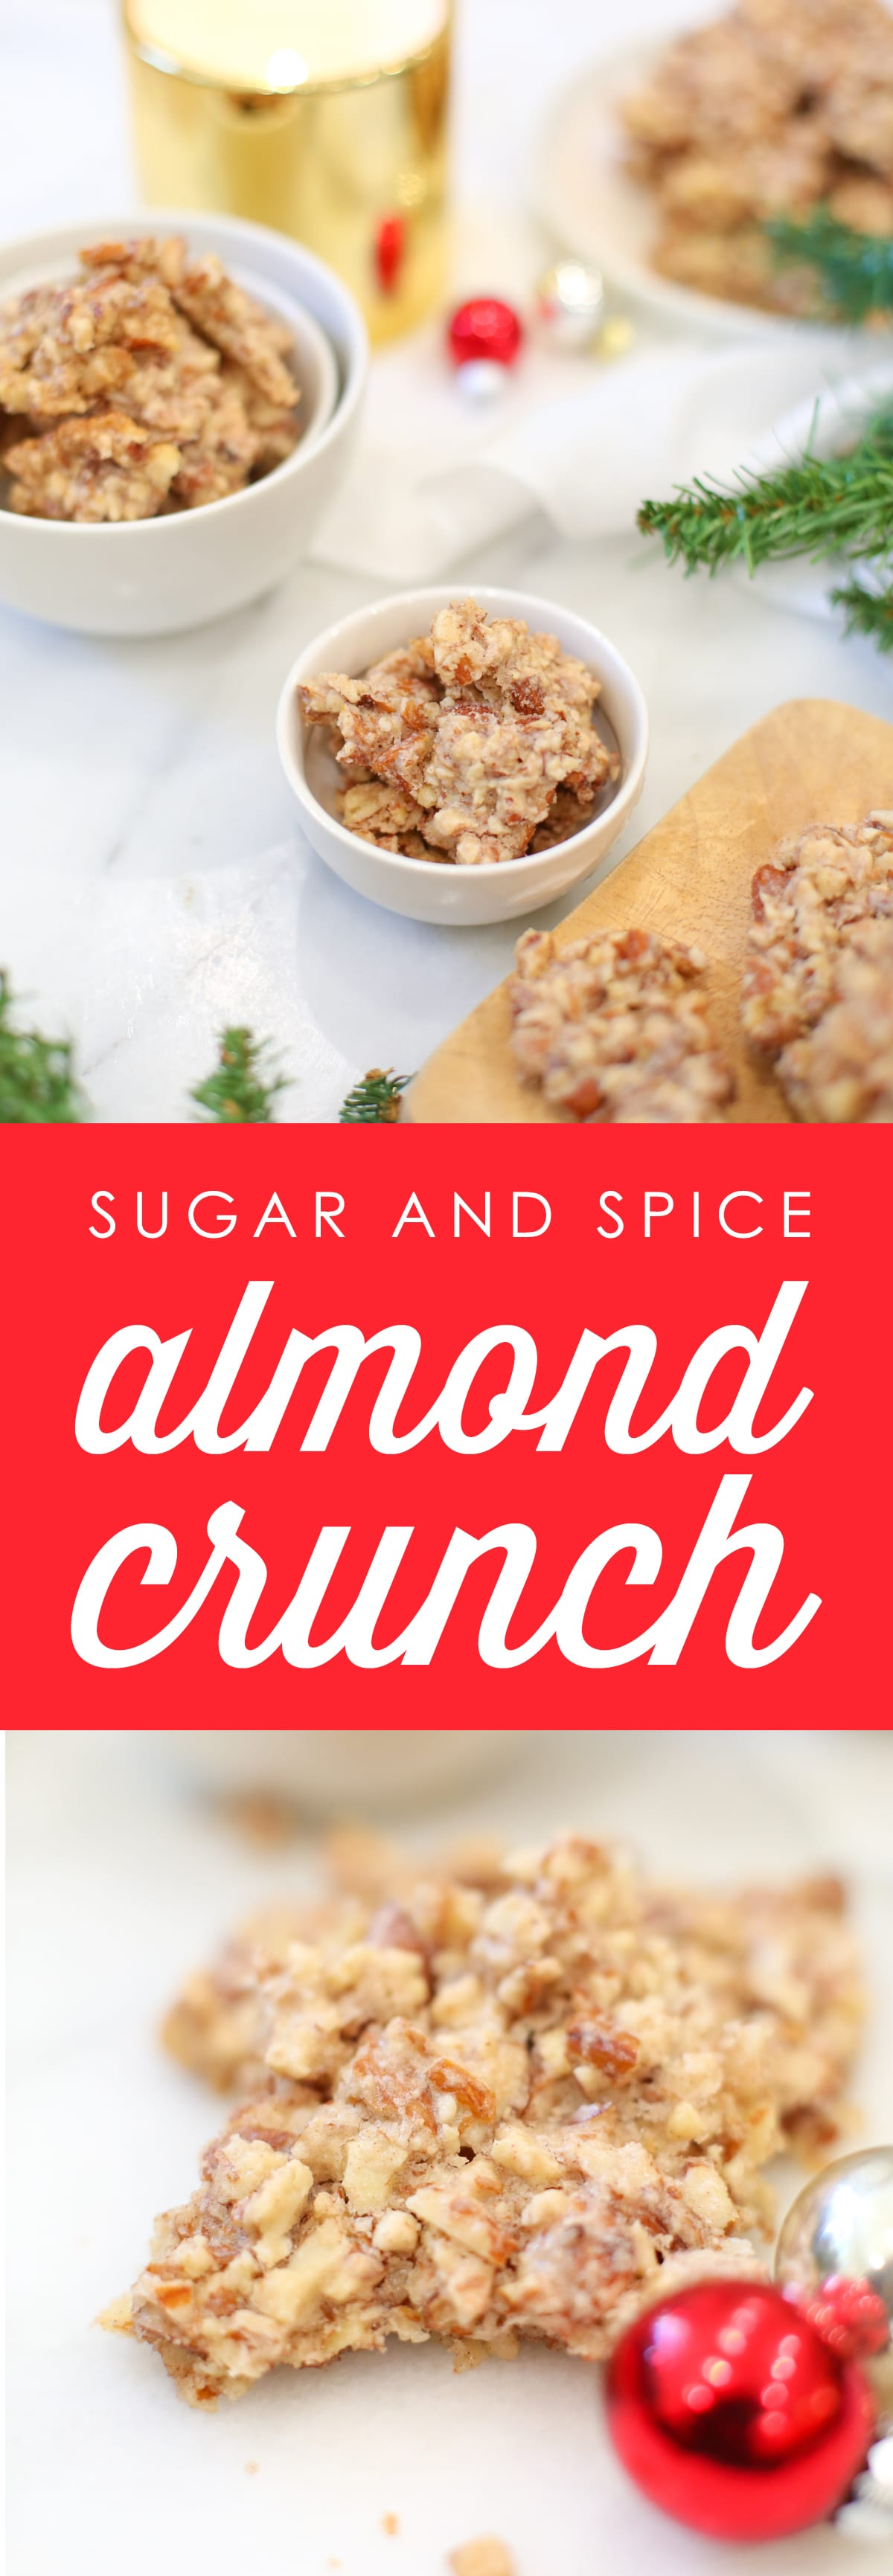 Sugar and spice almond crunch recipe for the holidays